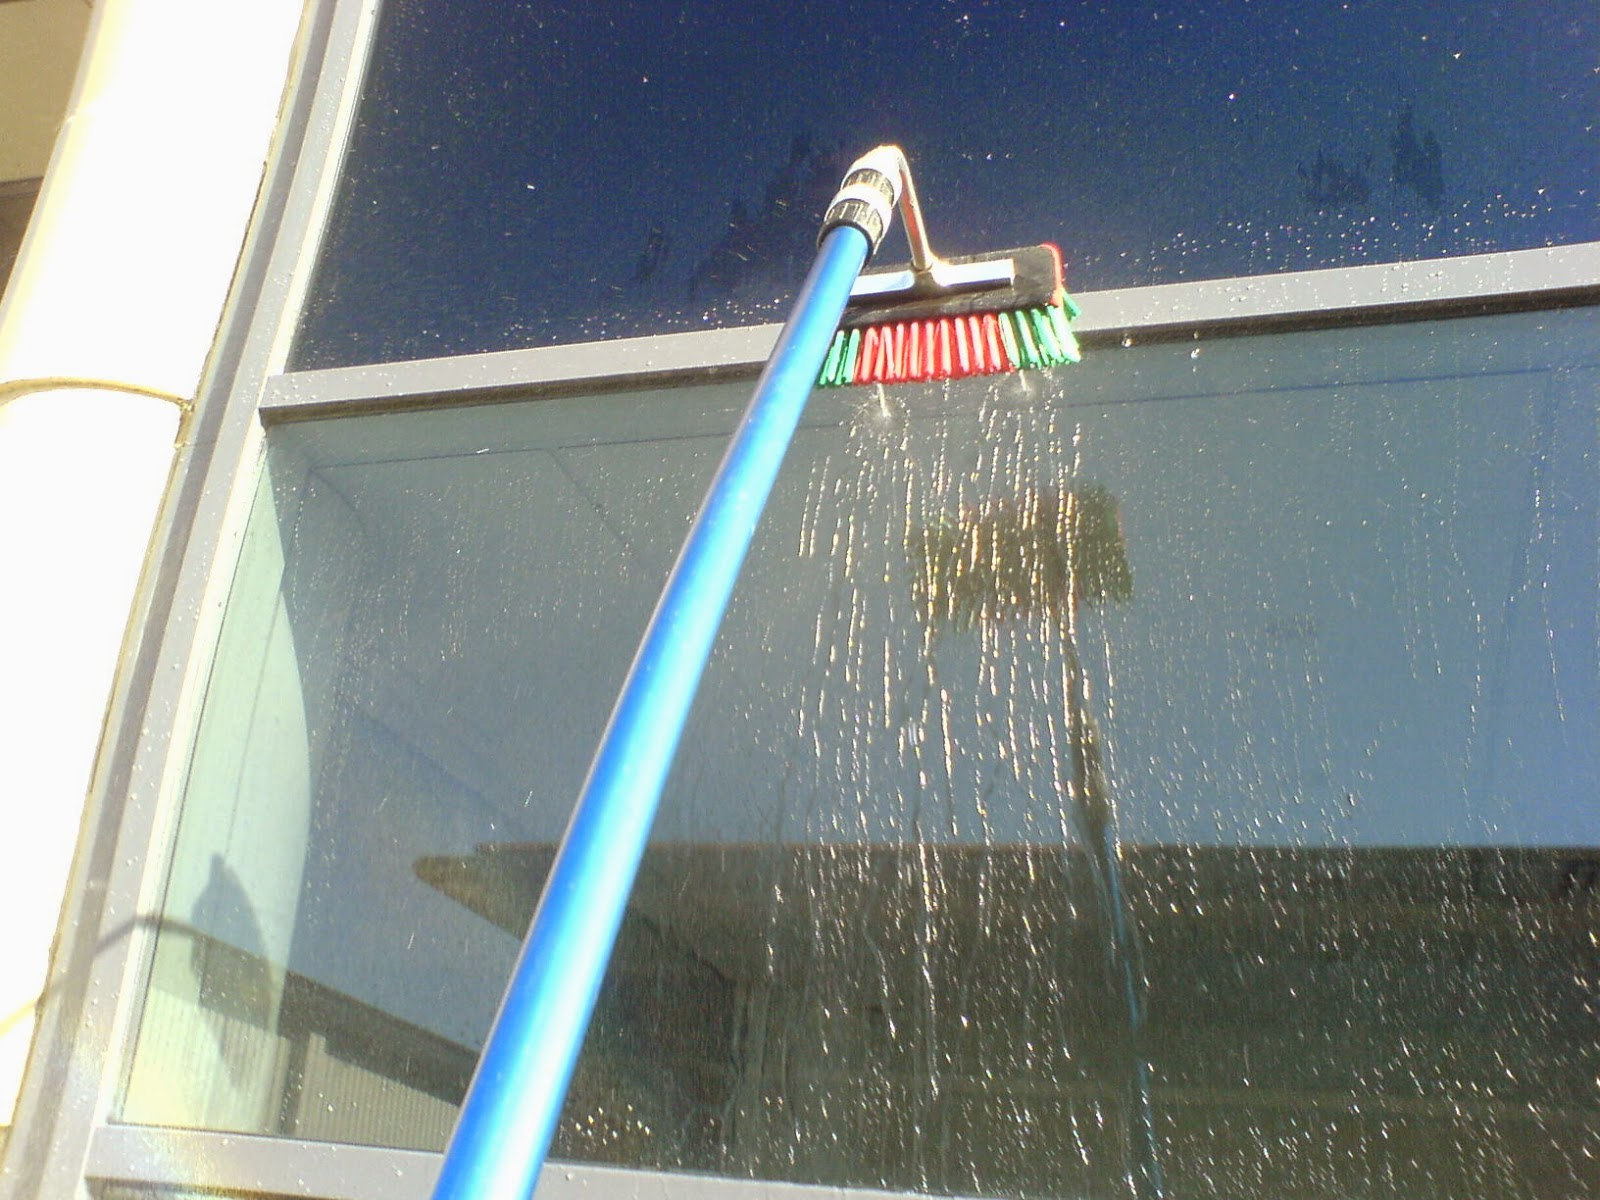 Window cleaning service gutter cleaners harrow brent for Window washing